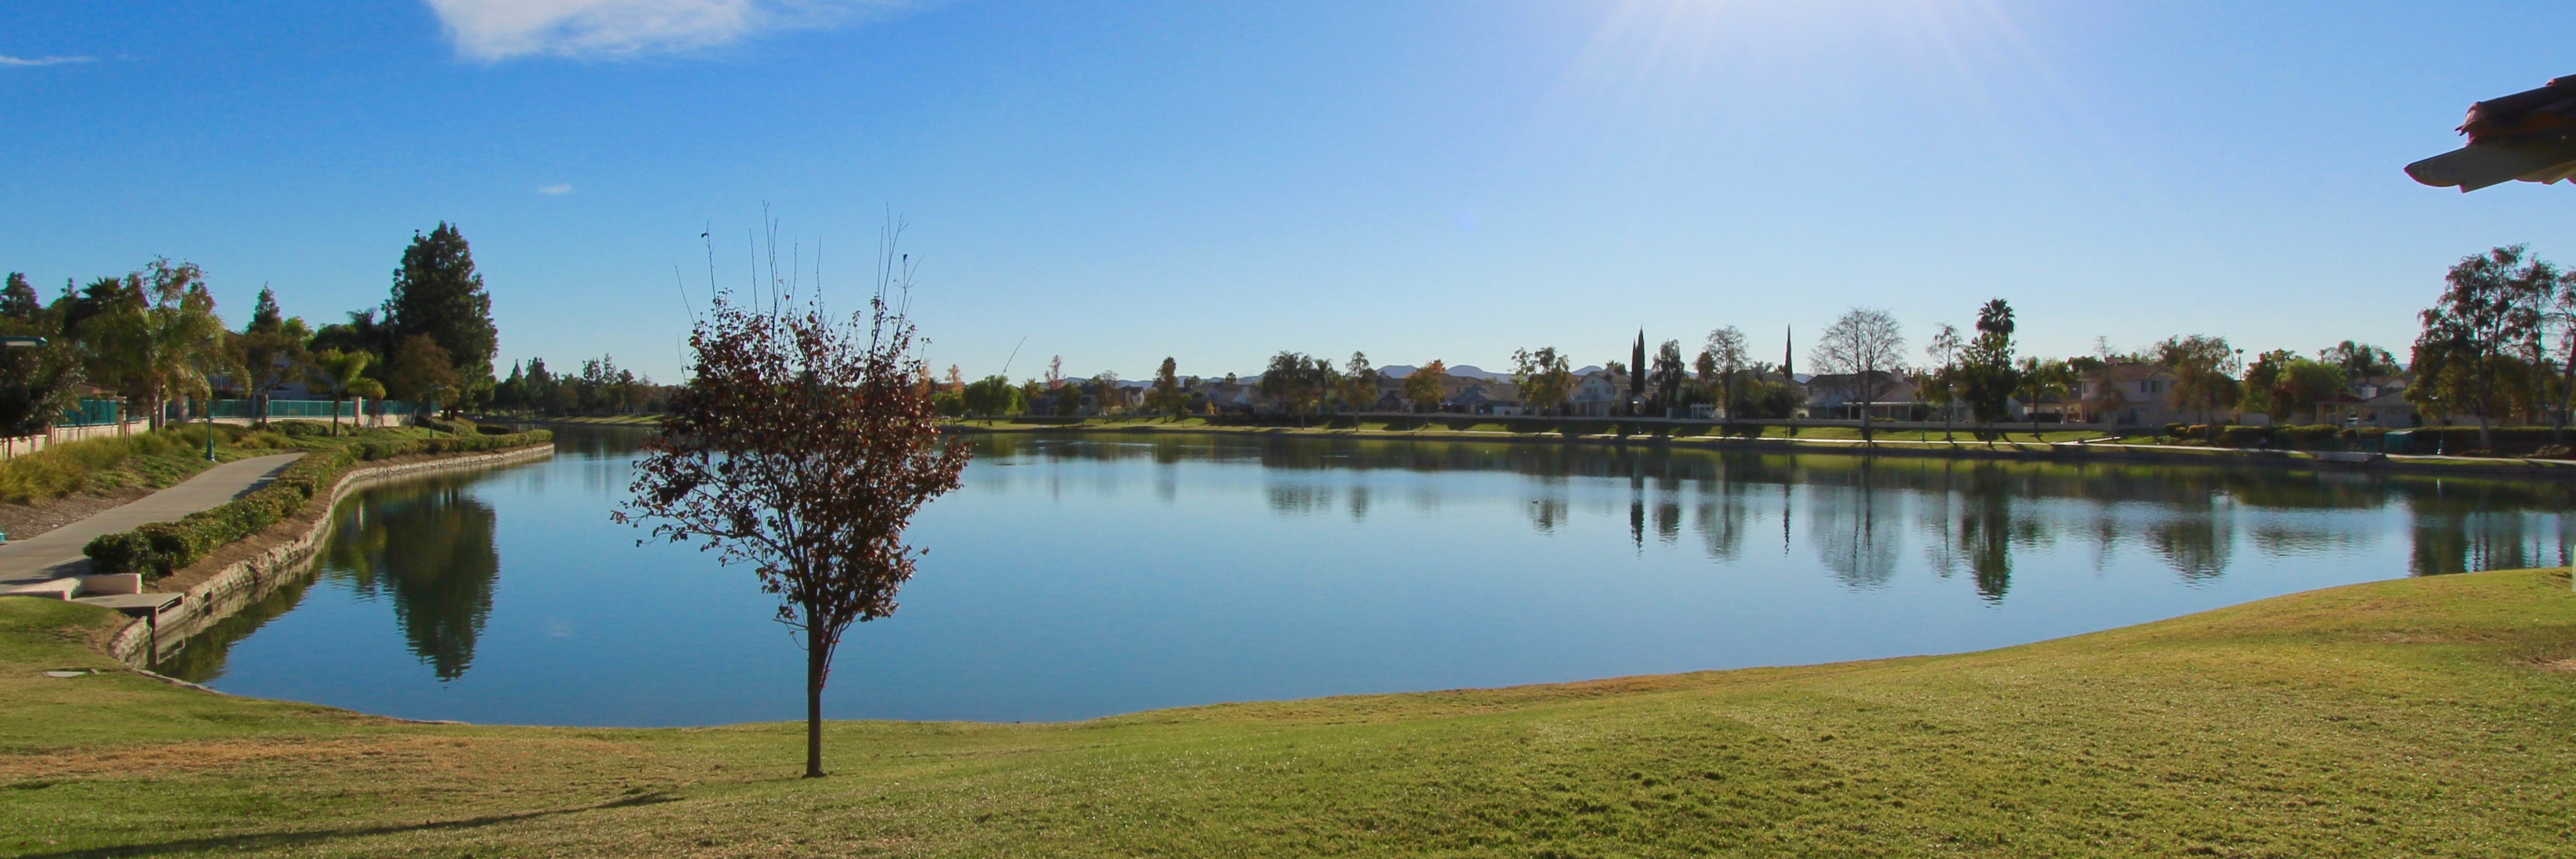 Menifee Lakes boasts a large man made lake